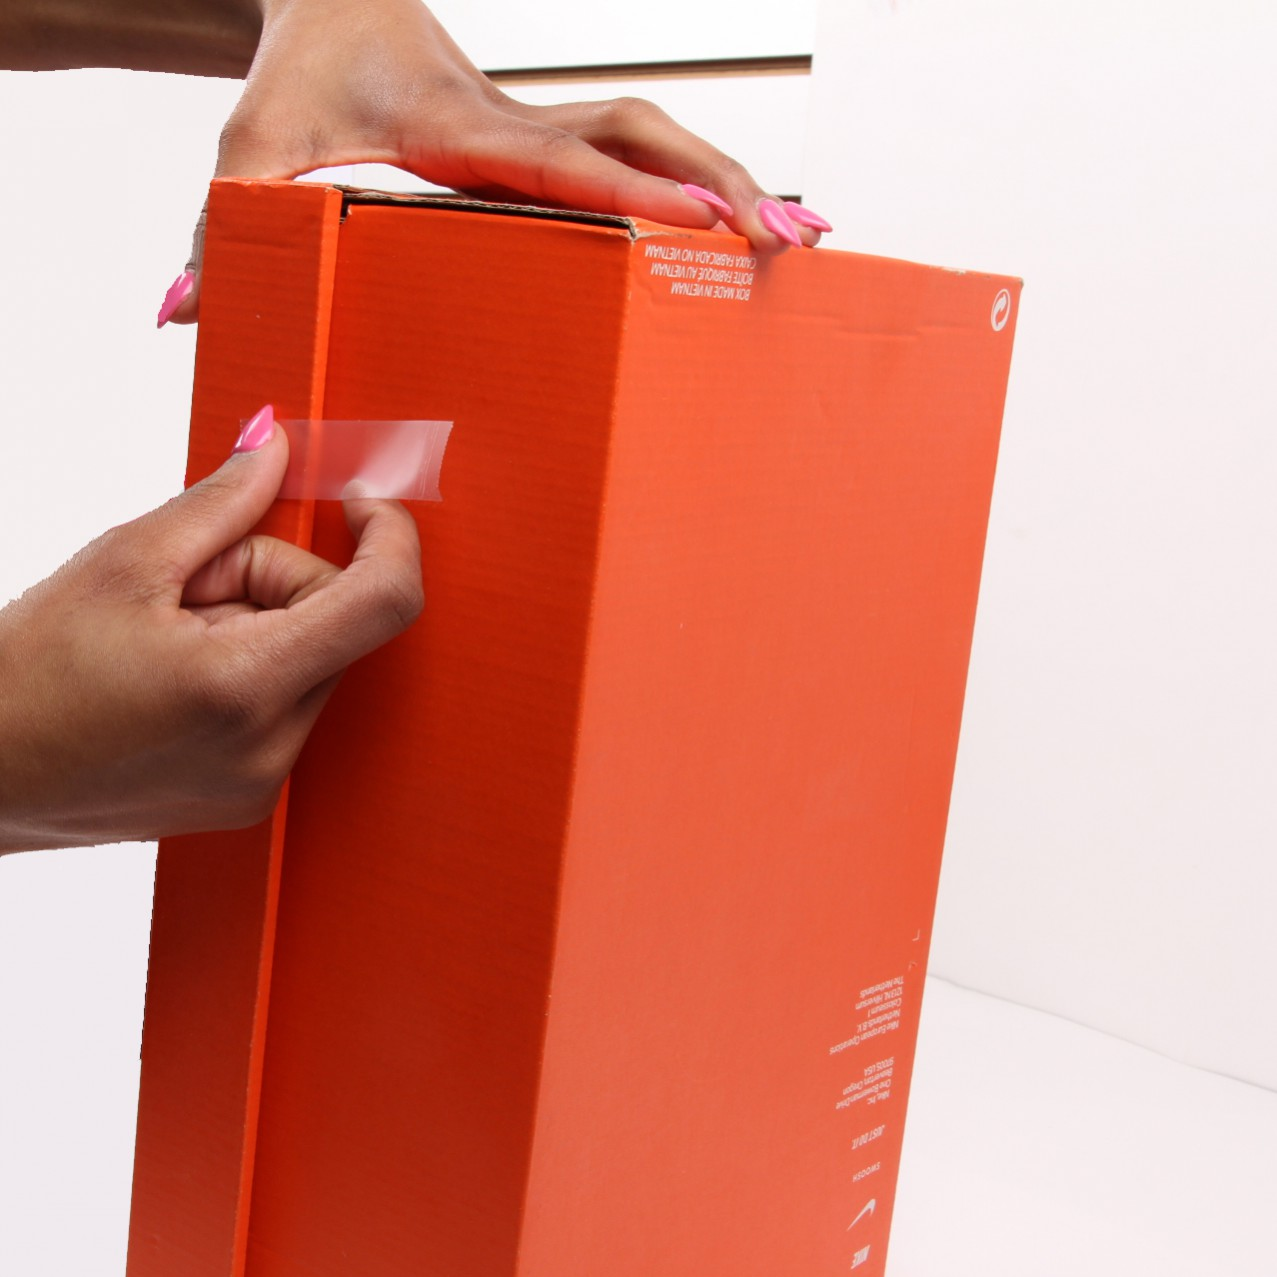 hands taping sides of nike shoe box to use as birdhouse